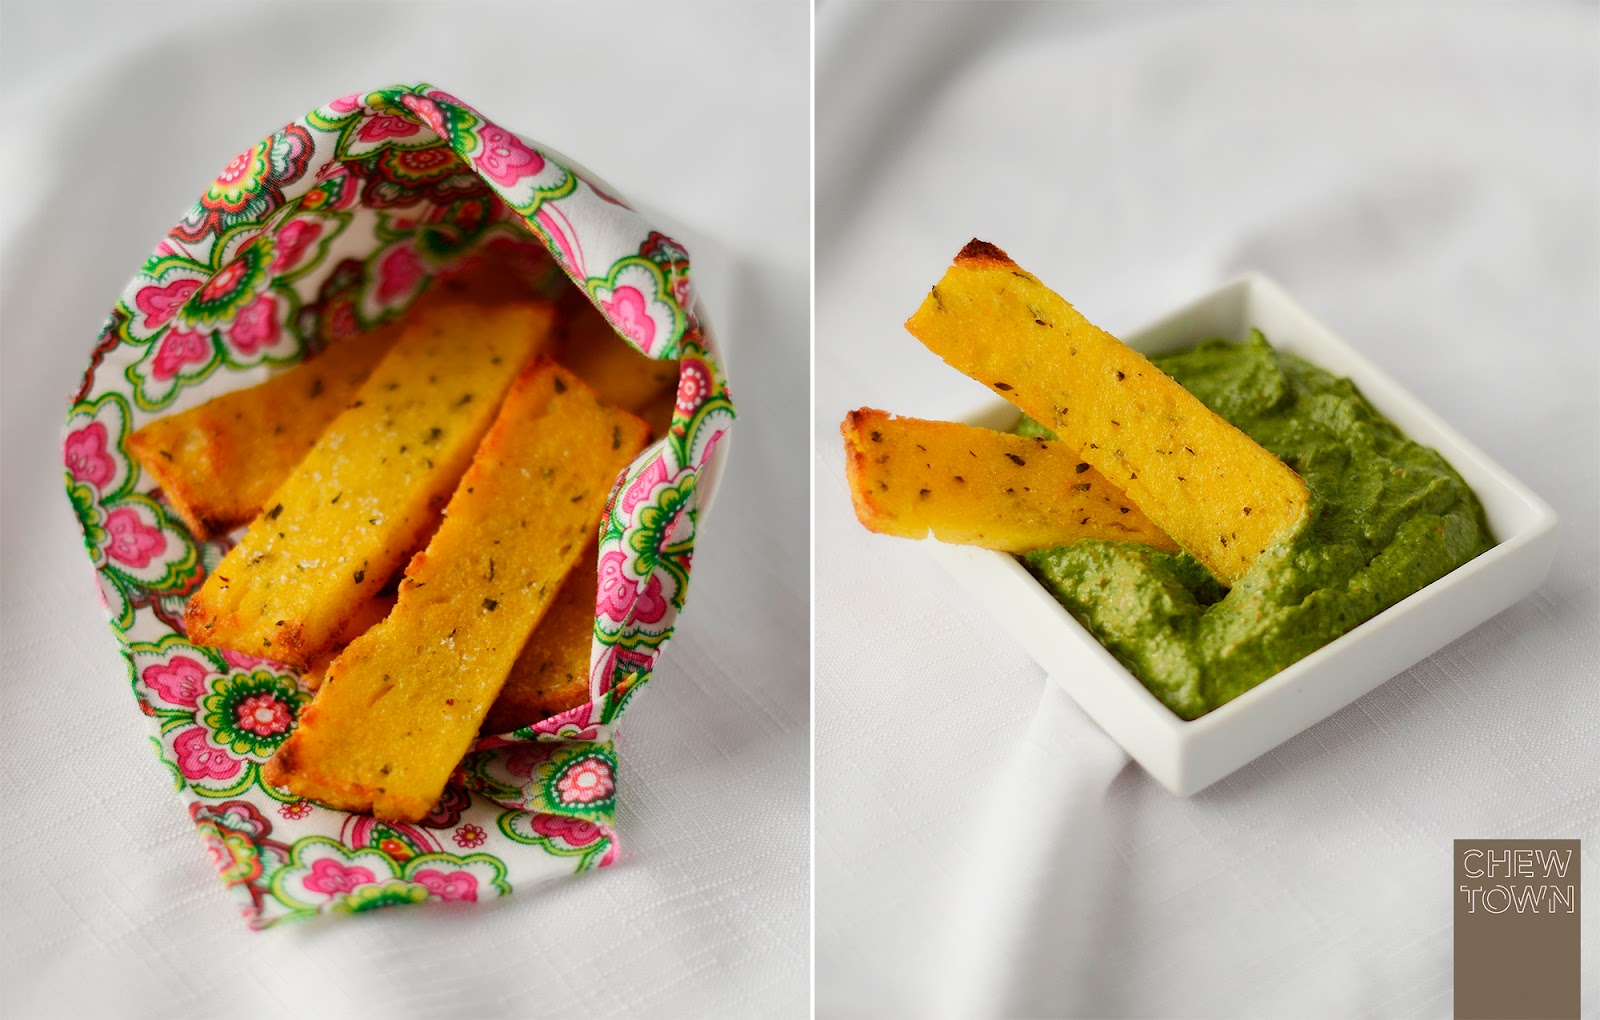 Cheese polenta chips images - Baked polenta cheese recipes ...